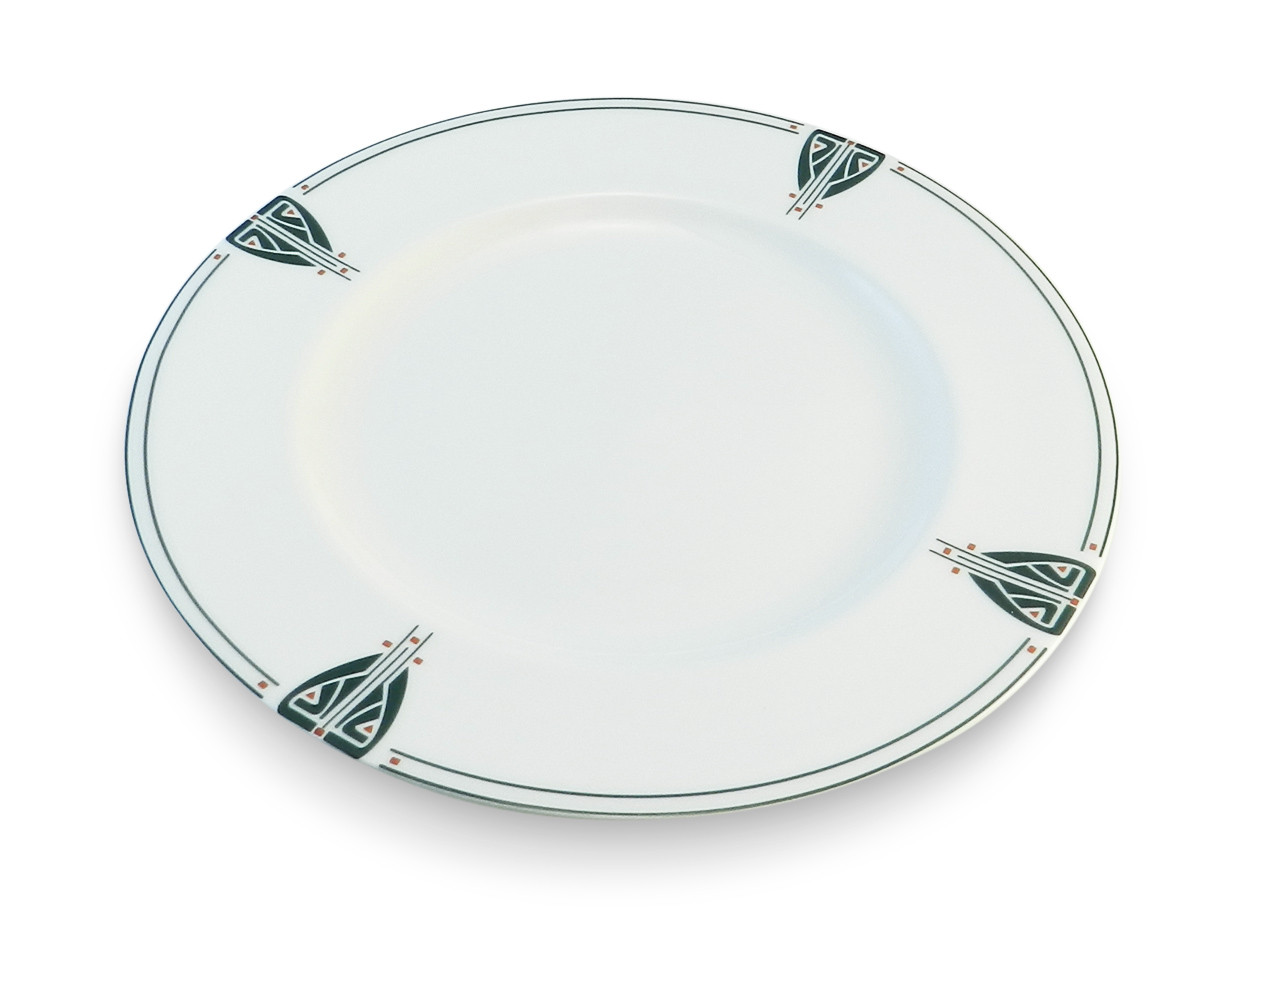 Dard Hunter China Viennese Pendant 11 Quot Dinner Plate